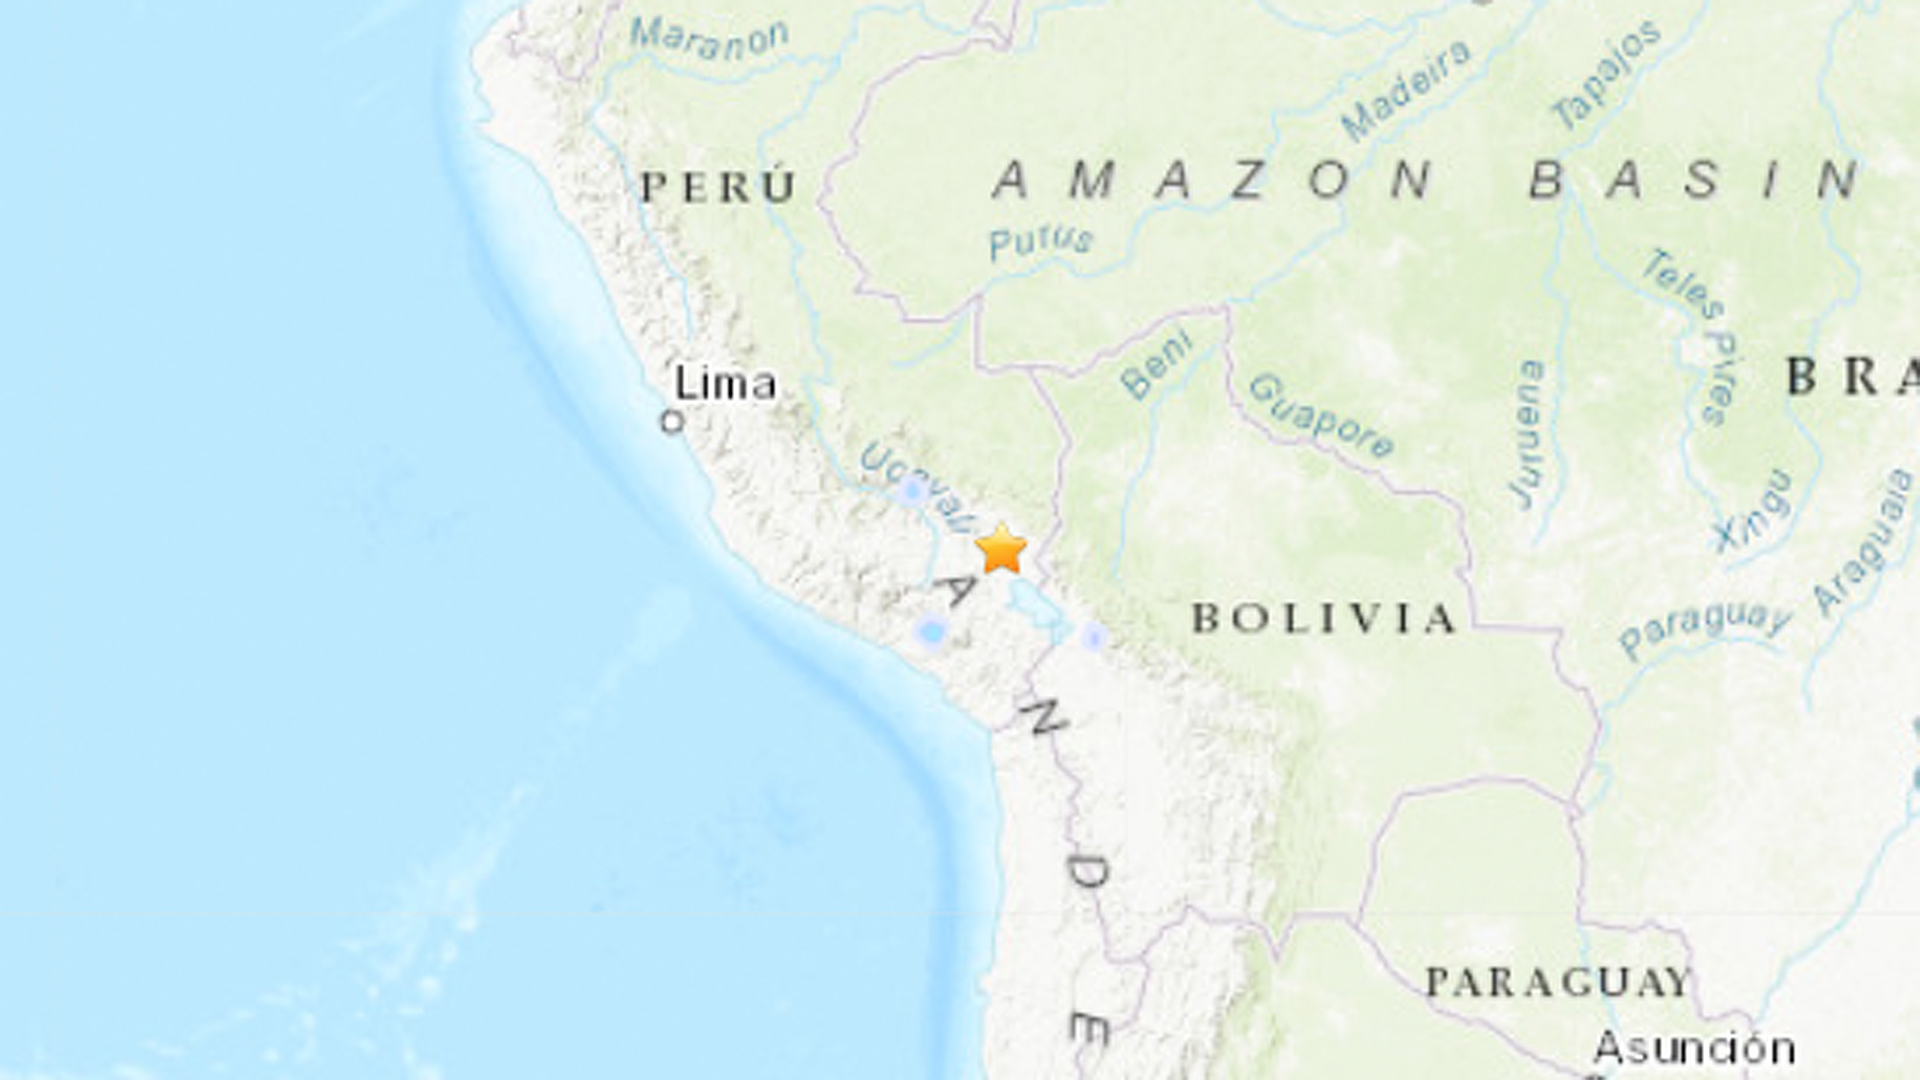 Peru was shaken by an earthquake on March 1, 2019. (Credit: USGS)